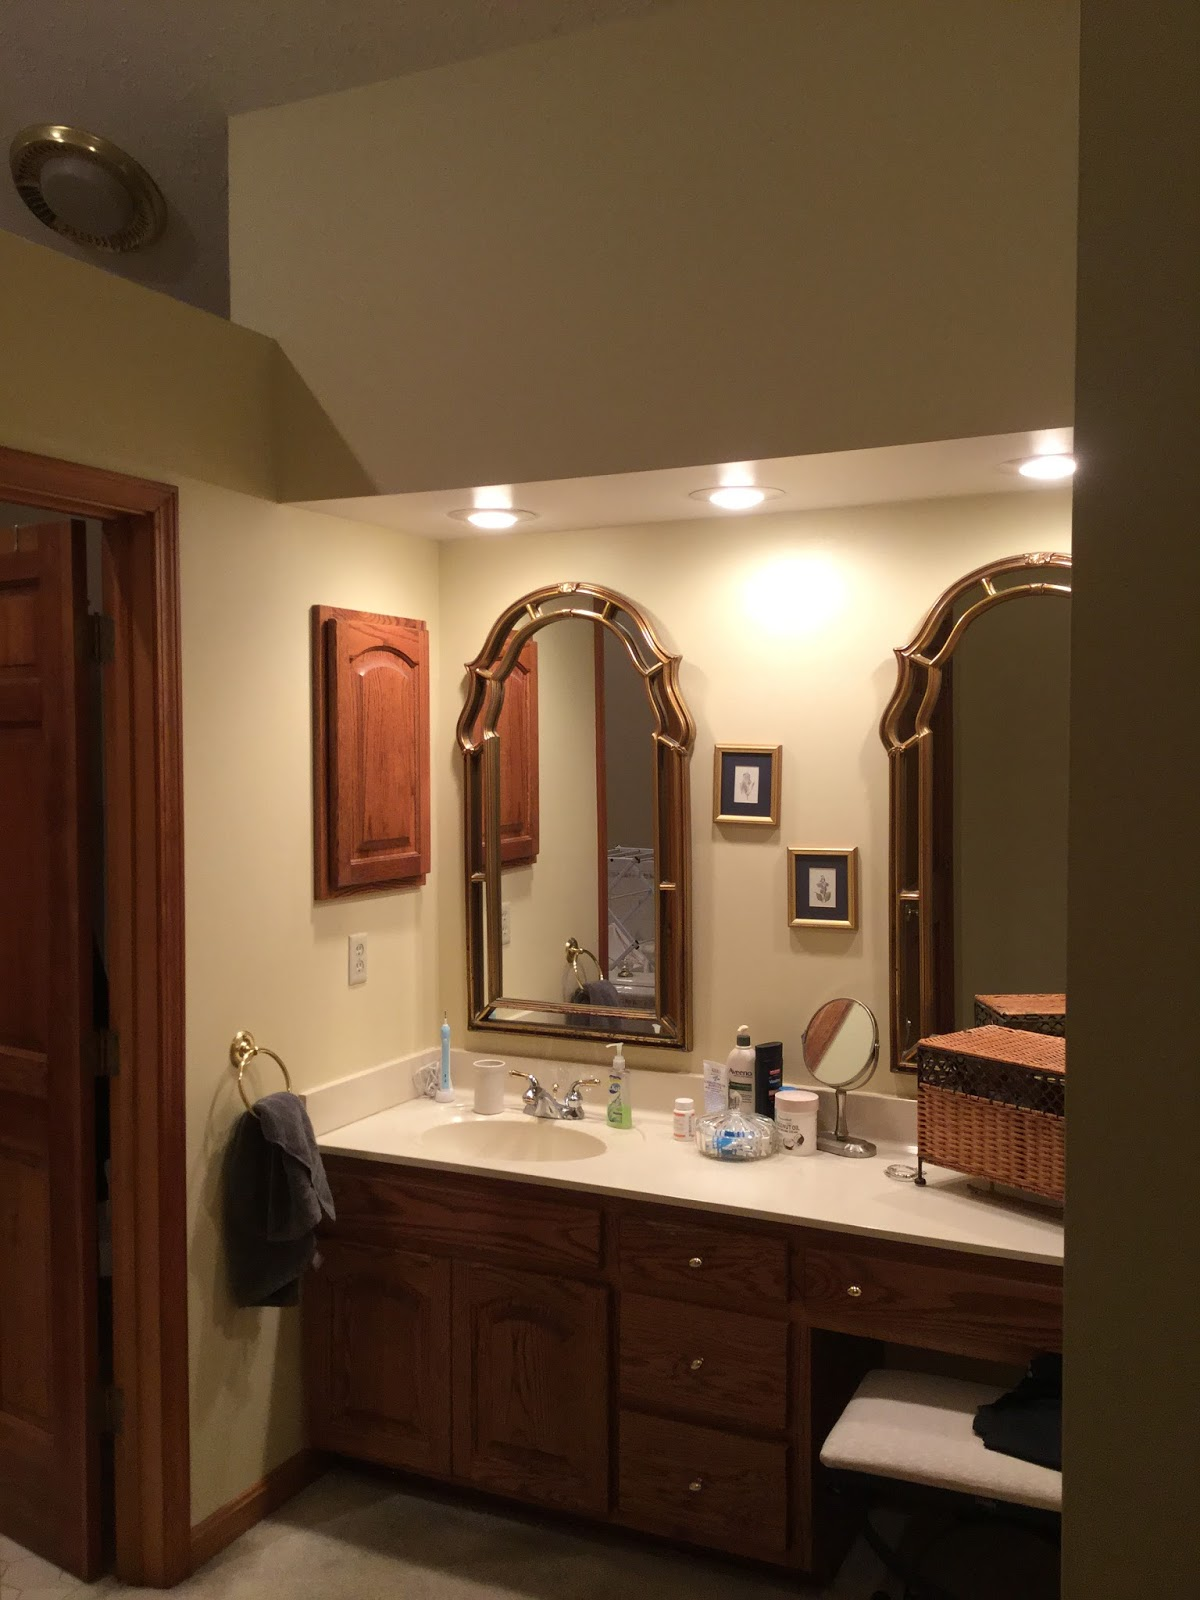 Inspirational The couple needed my design services in space planning drawing up plans for the overall space including the design of the vanity and help in selecting